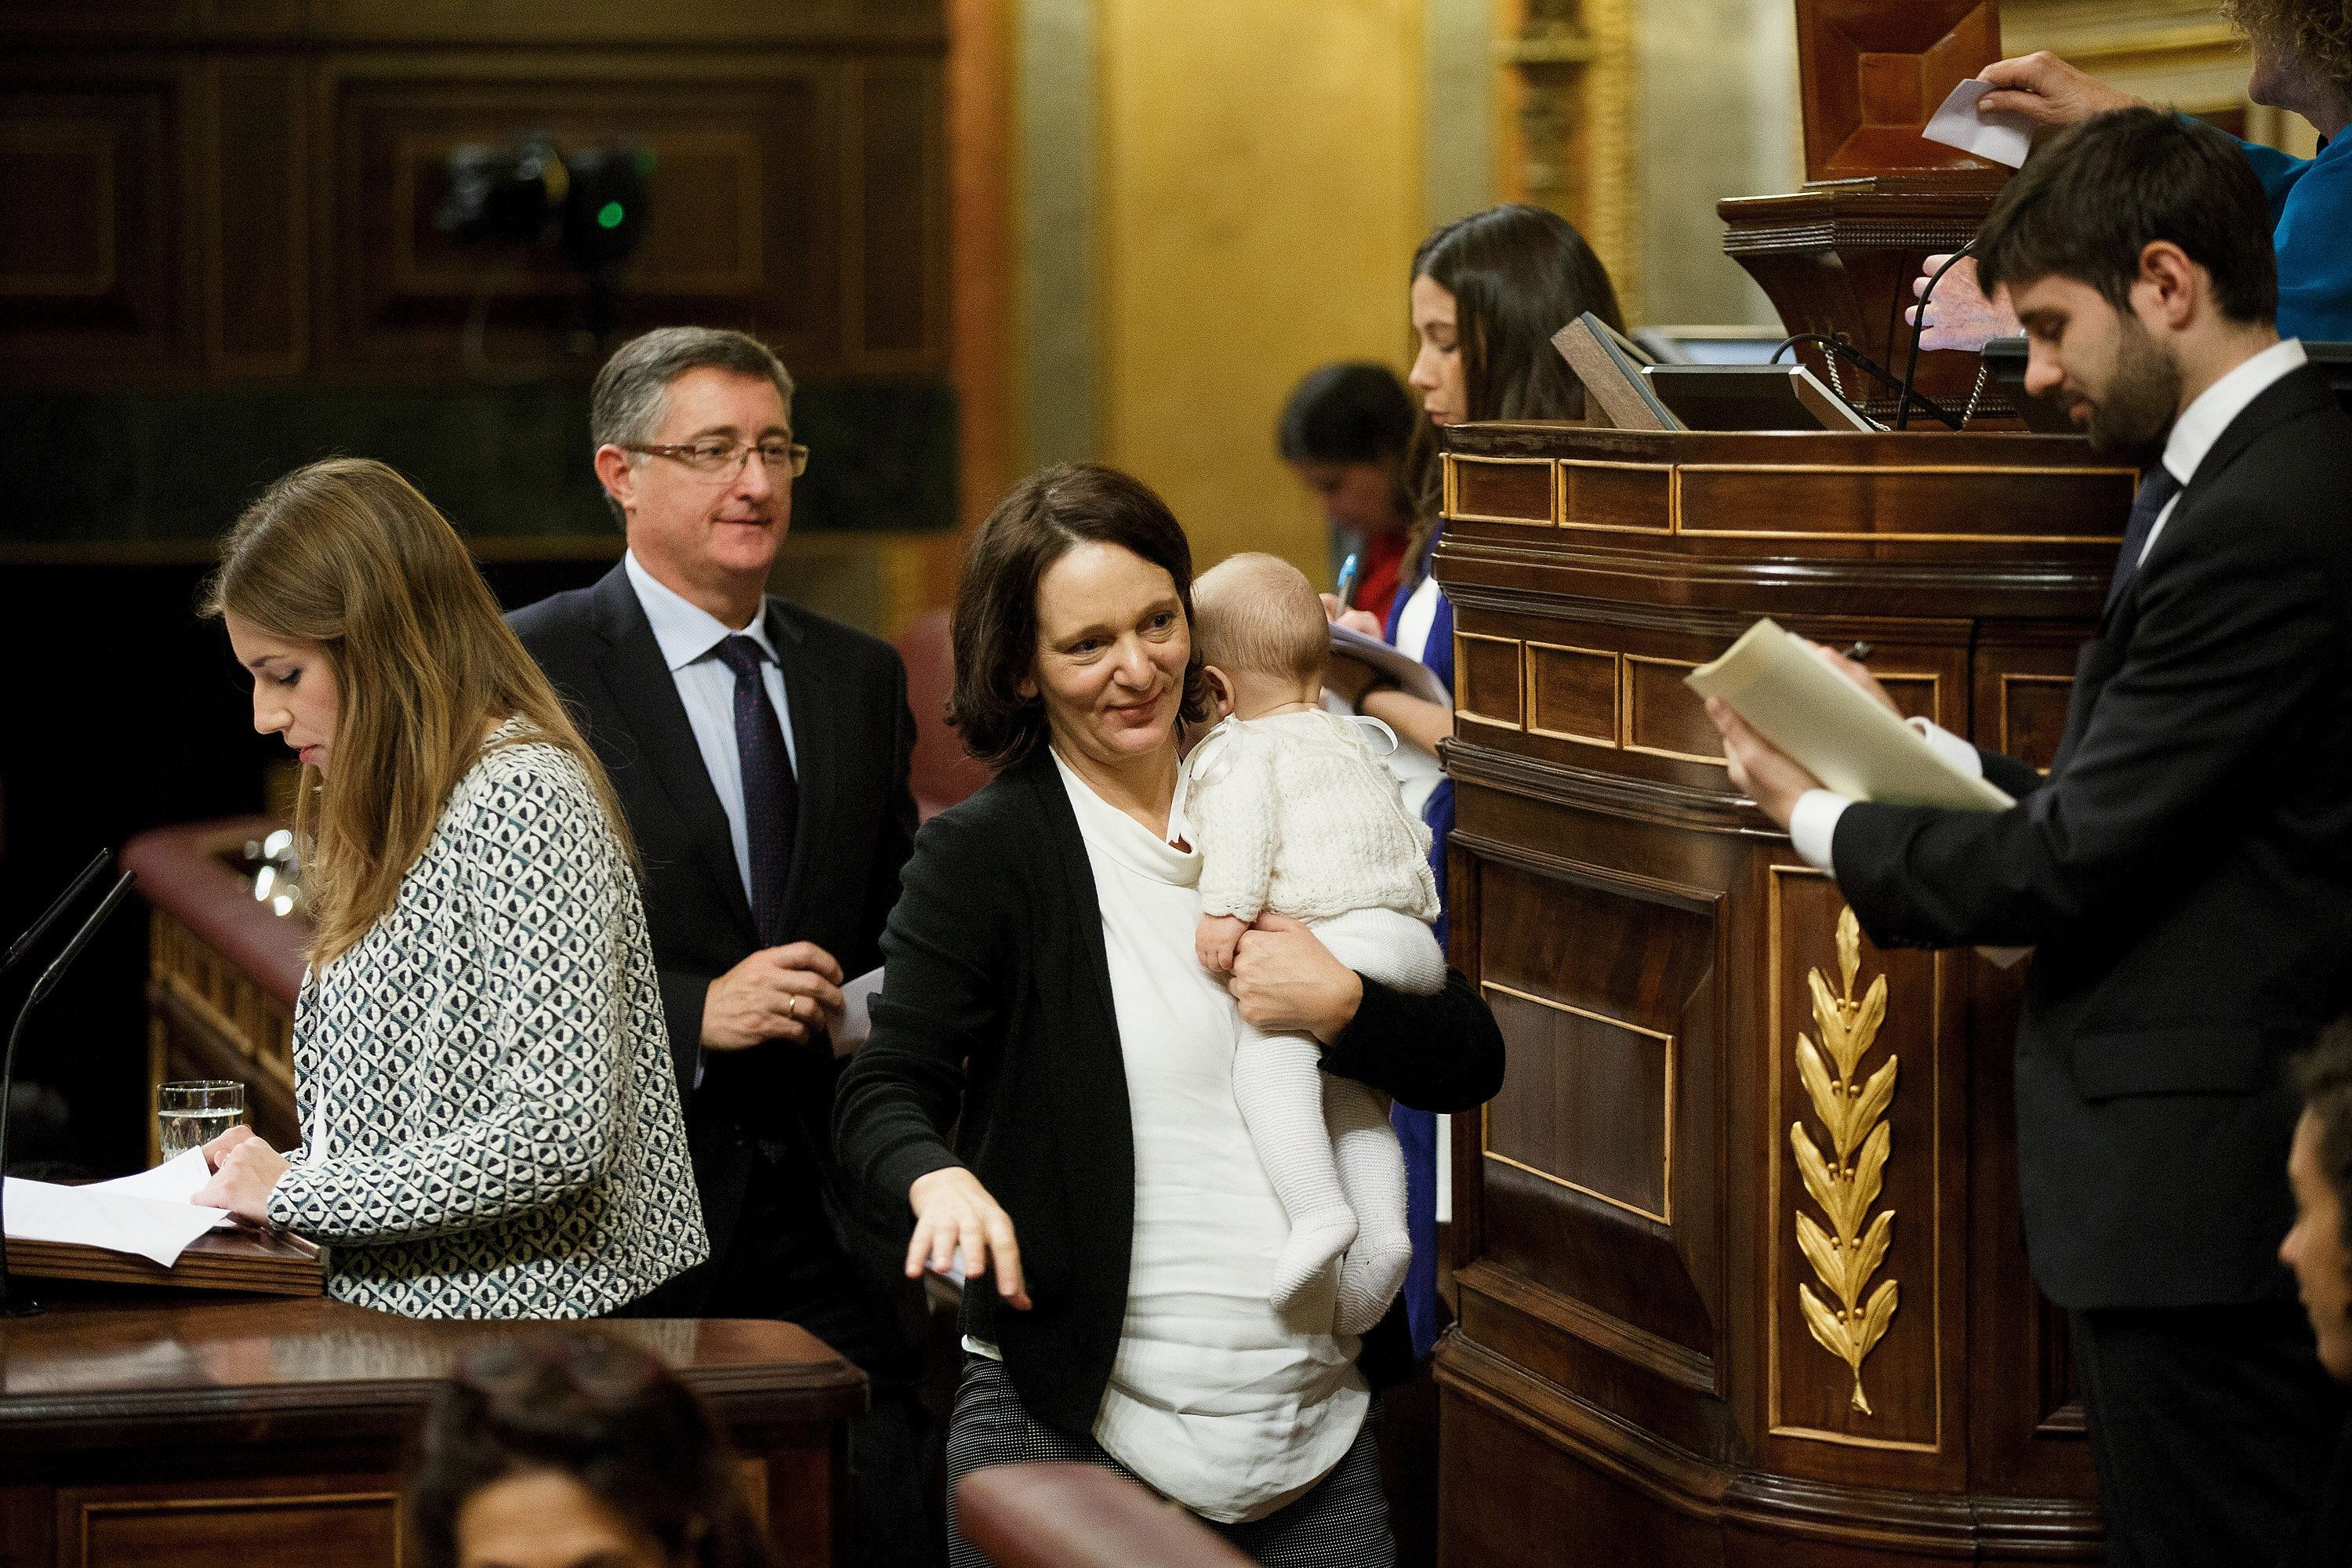 Carolina Bescansa carries her son after casting her ballot during the inaugural meeting of Spain's parliament.